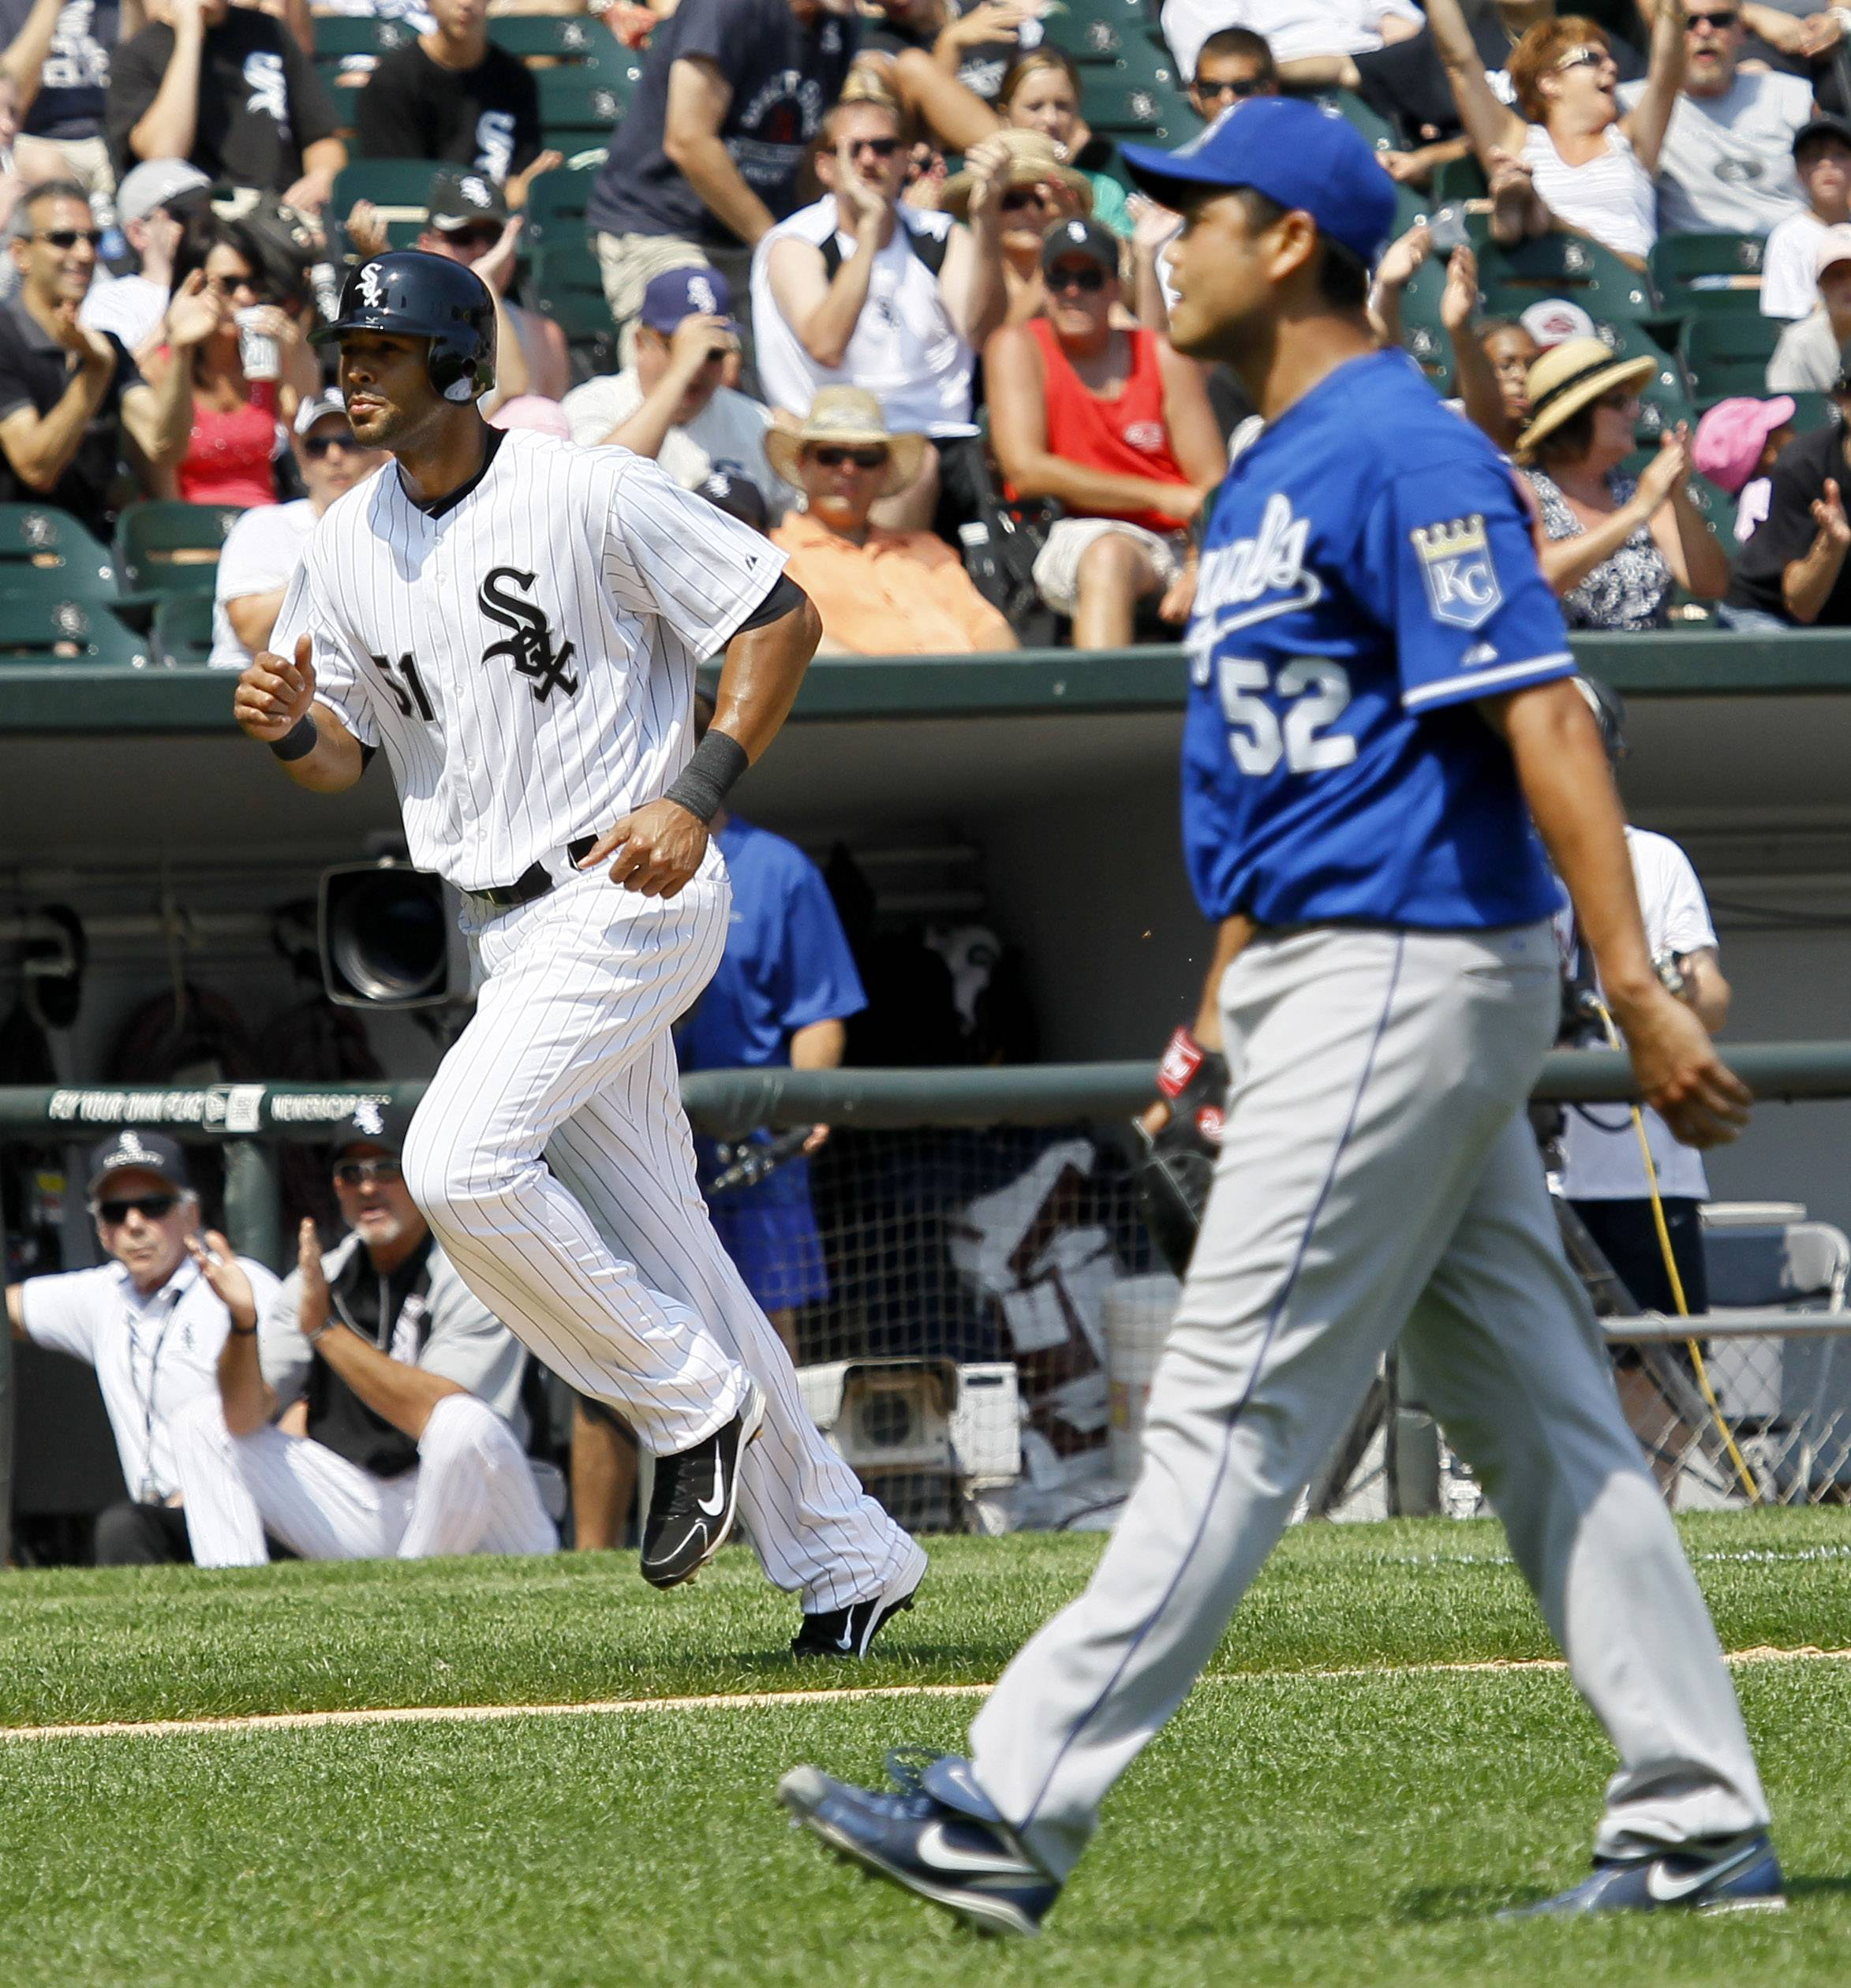 Alex Rios trots home to score after Kansas City Royals starting pitcher Bruce Chen walked Adam Dunn with the bases load Wednesday at U.S. Cellular Field.